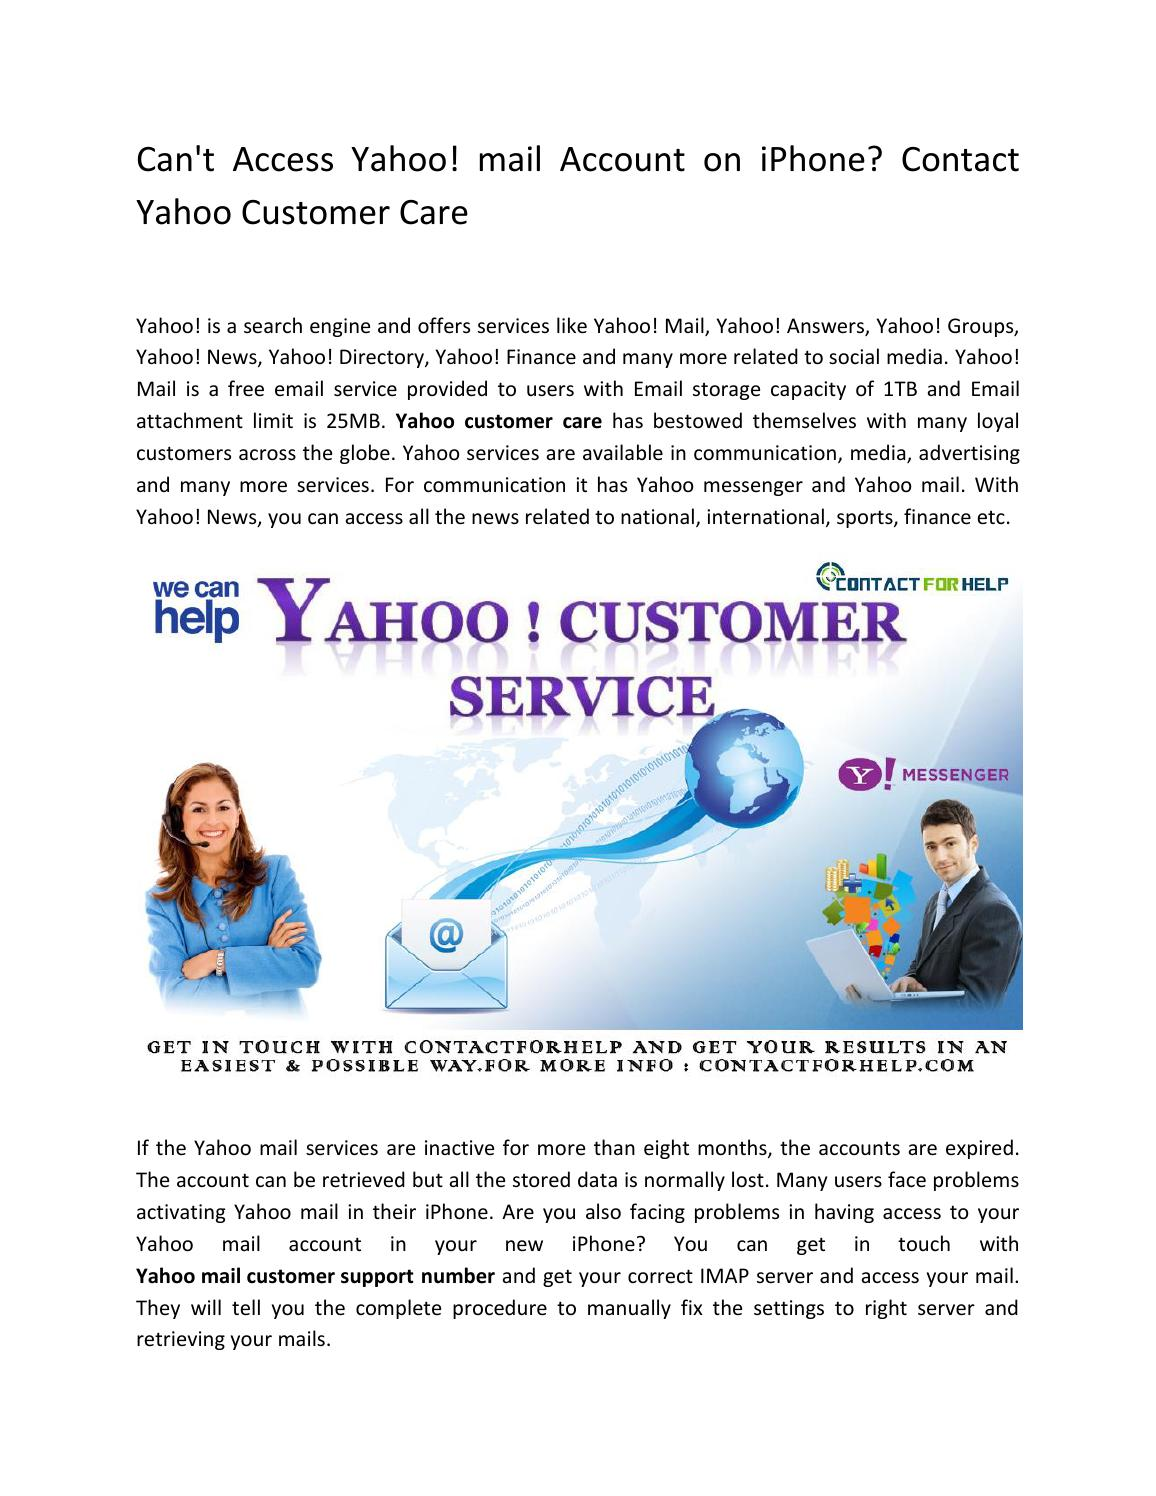 how to contact yahoo customer support by email